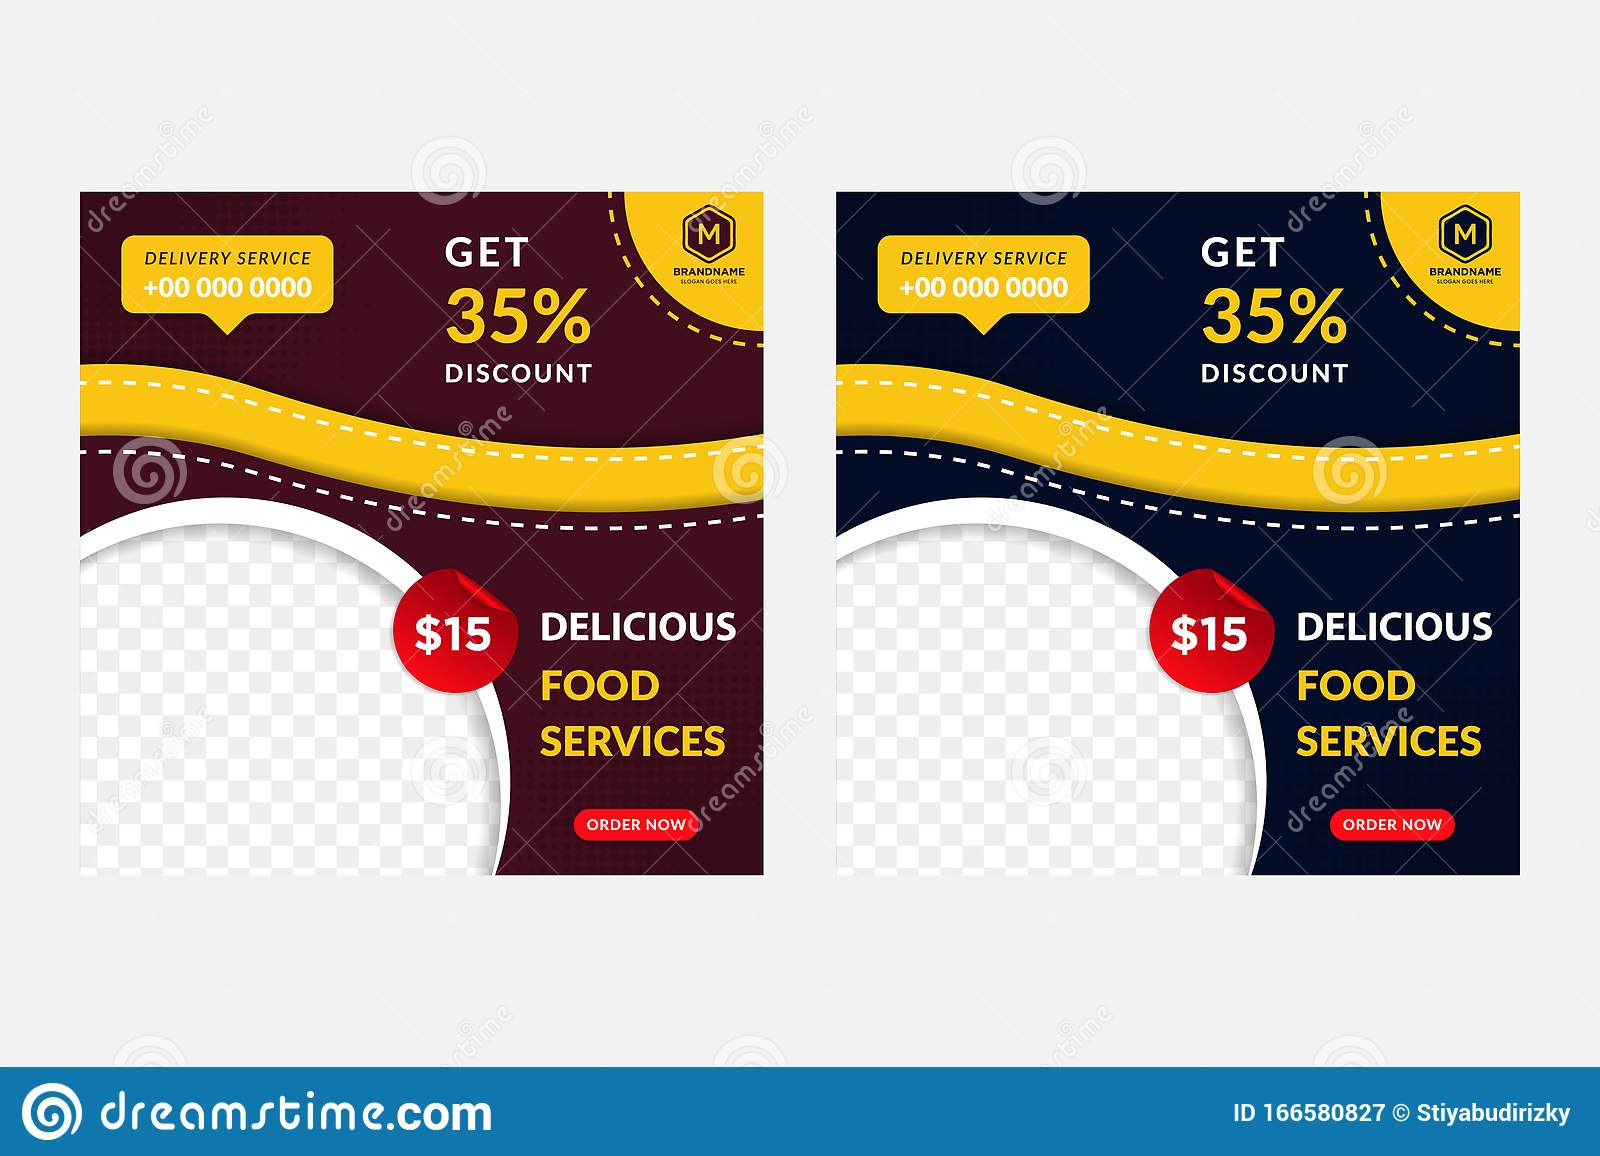 Social Media Post For Food And Restaurant Promotion Dark Red And Blue Background Combination With Red White And Yellow Colors Stock Vector Illustration Of Layout Brochure 166580827